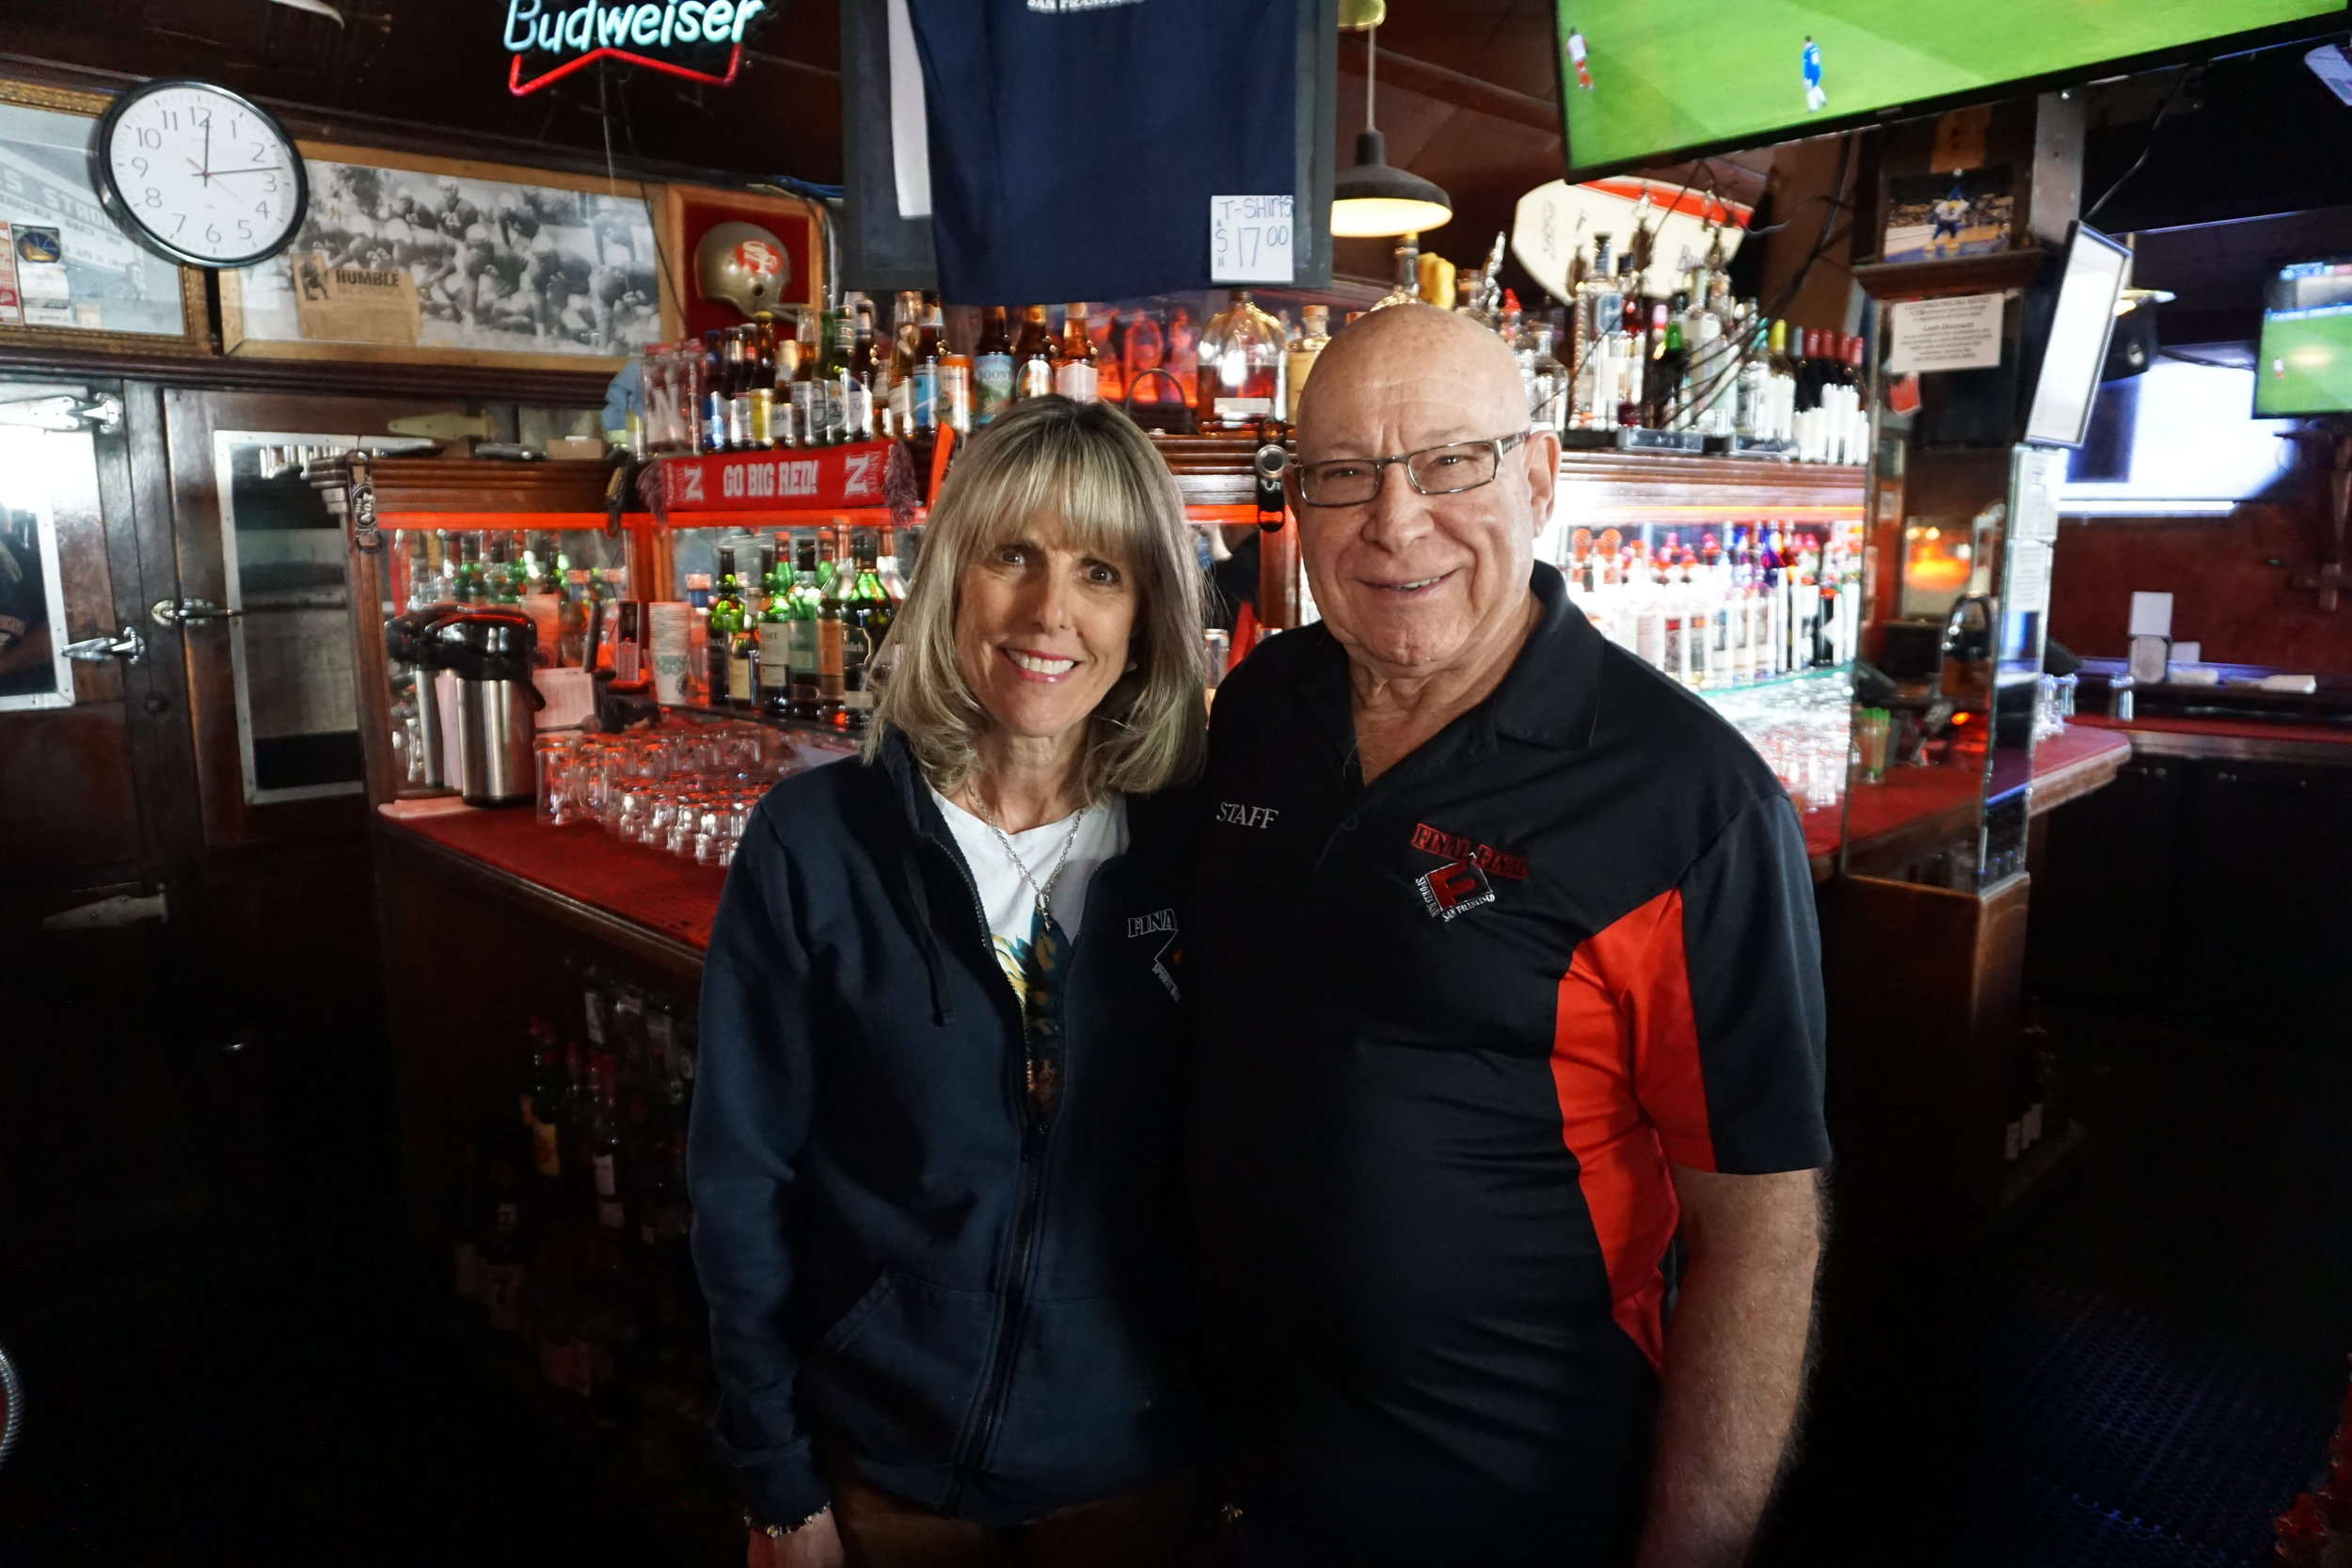 Arnold & LInda Prien - Hello my name is Arnold Prien and this is my wife Linda. I've been the owner and operator of The Final Final since 1978. I've walked around this bar more times than I can count. Come by, have a beverage, and ask me about its rich history. Cheers!